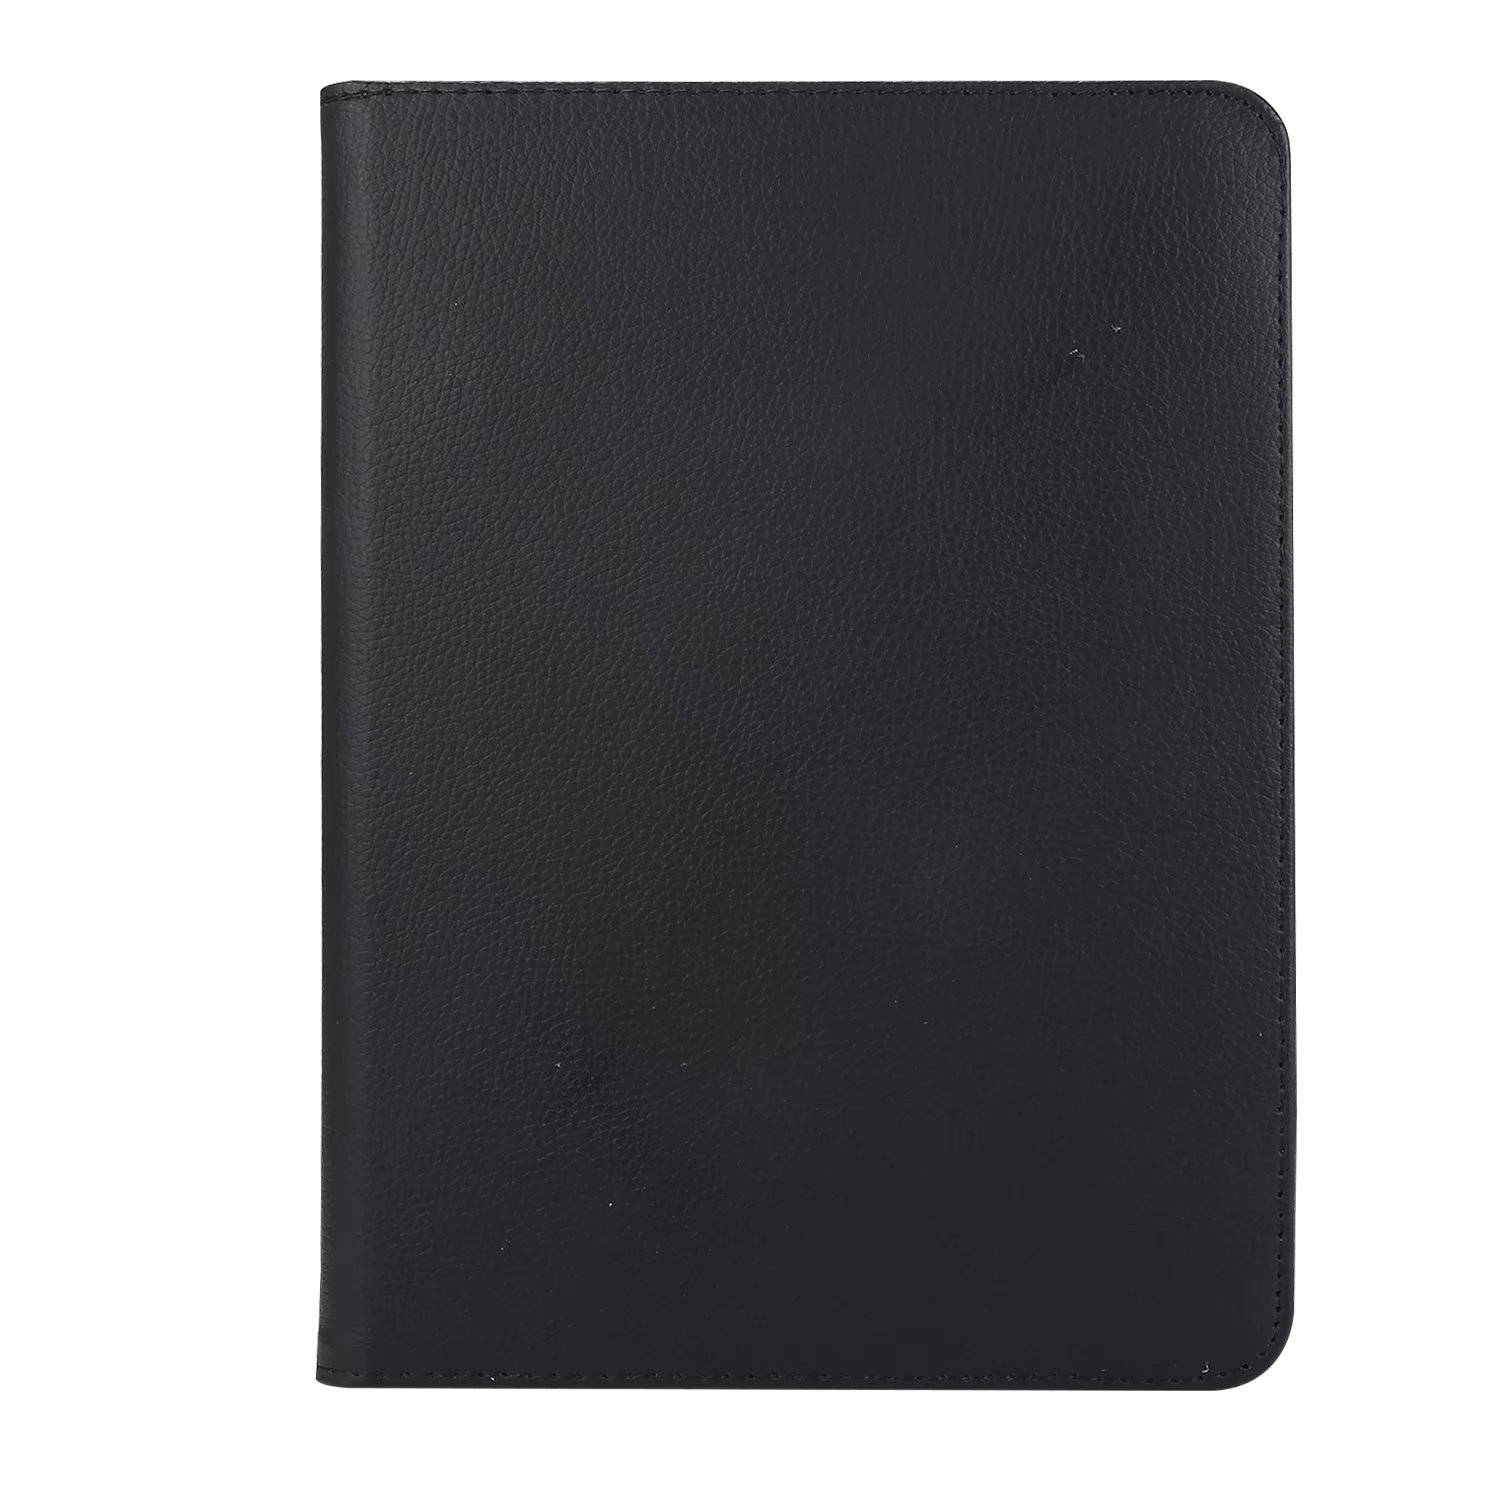 360 11 for A1980 A2230 2021/2020/2018 Cover A2068 A2228 Case A2013 A1934 iPad Pro Degree